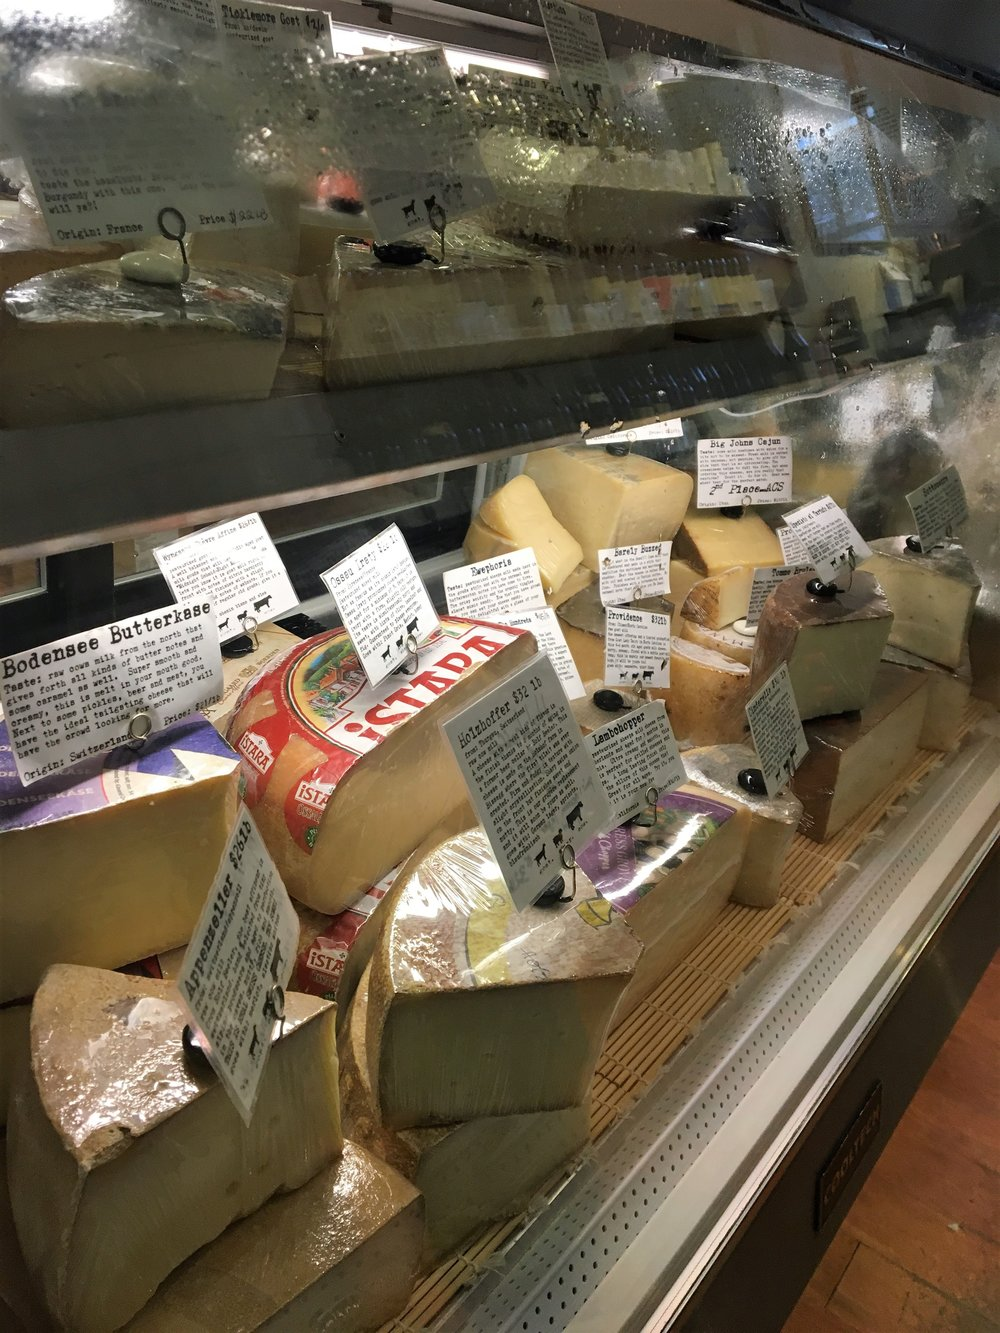 Look at this beautiful case of cheeses - pure heaven.